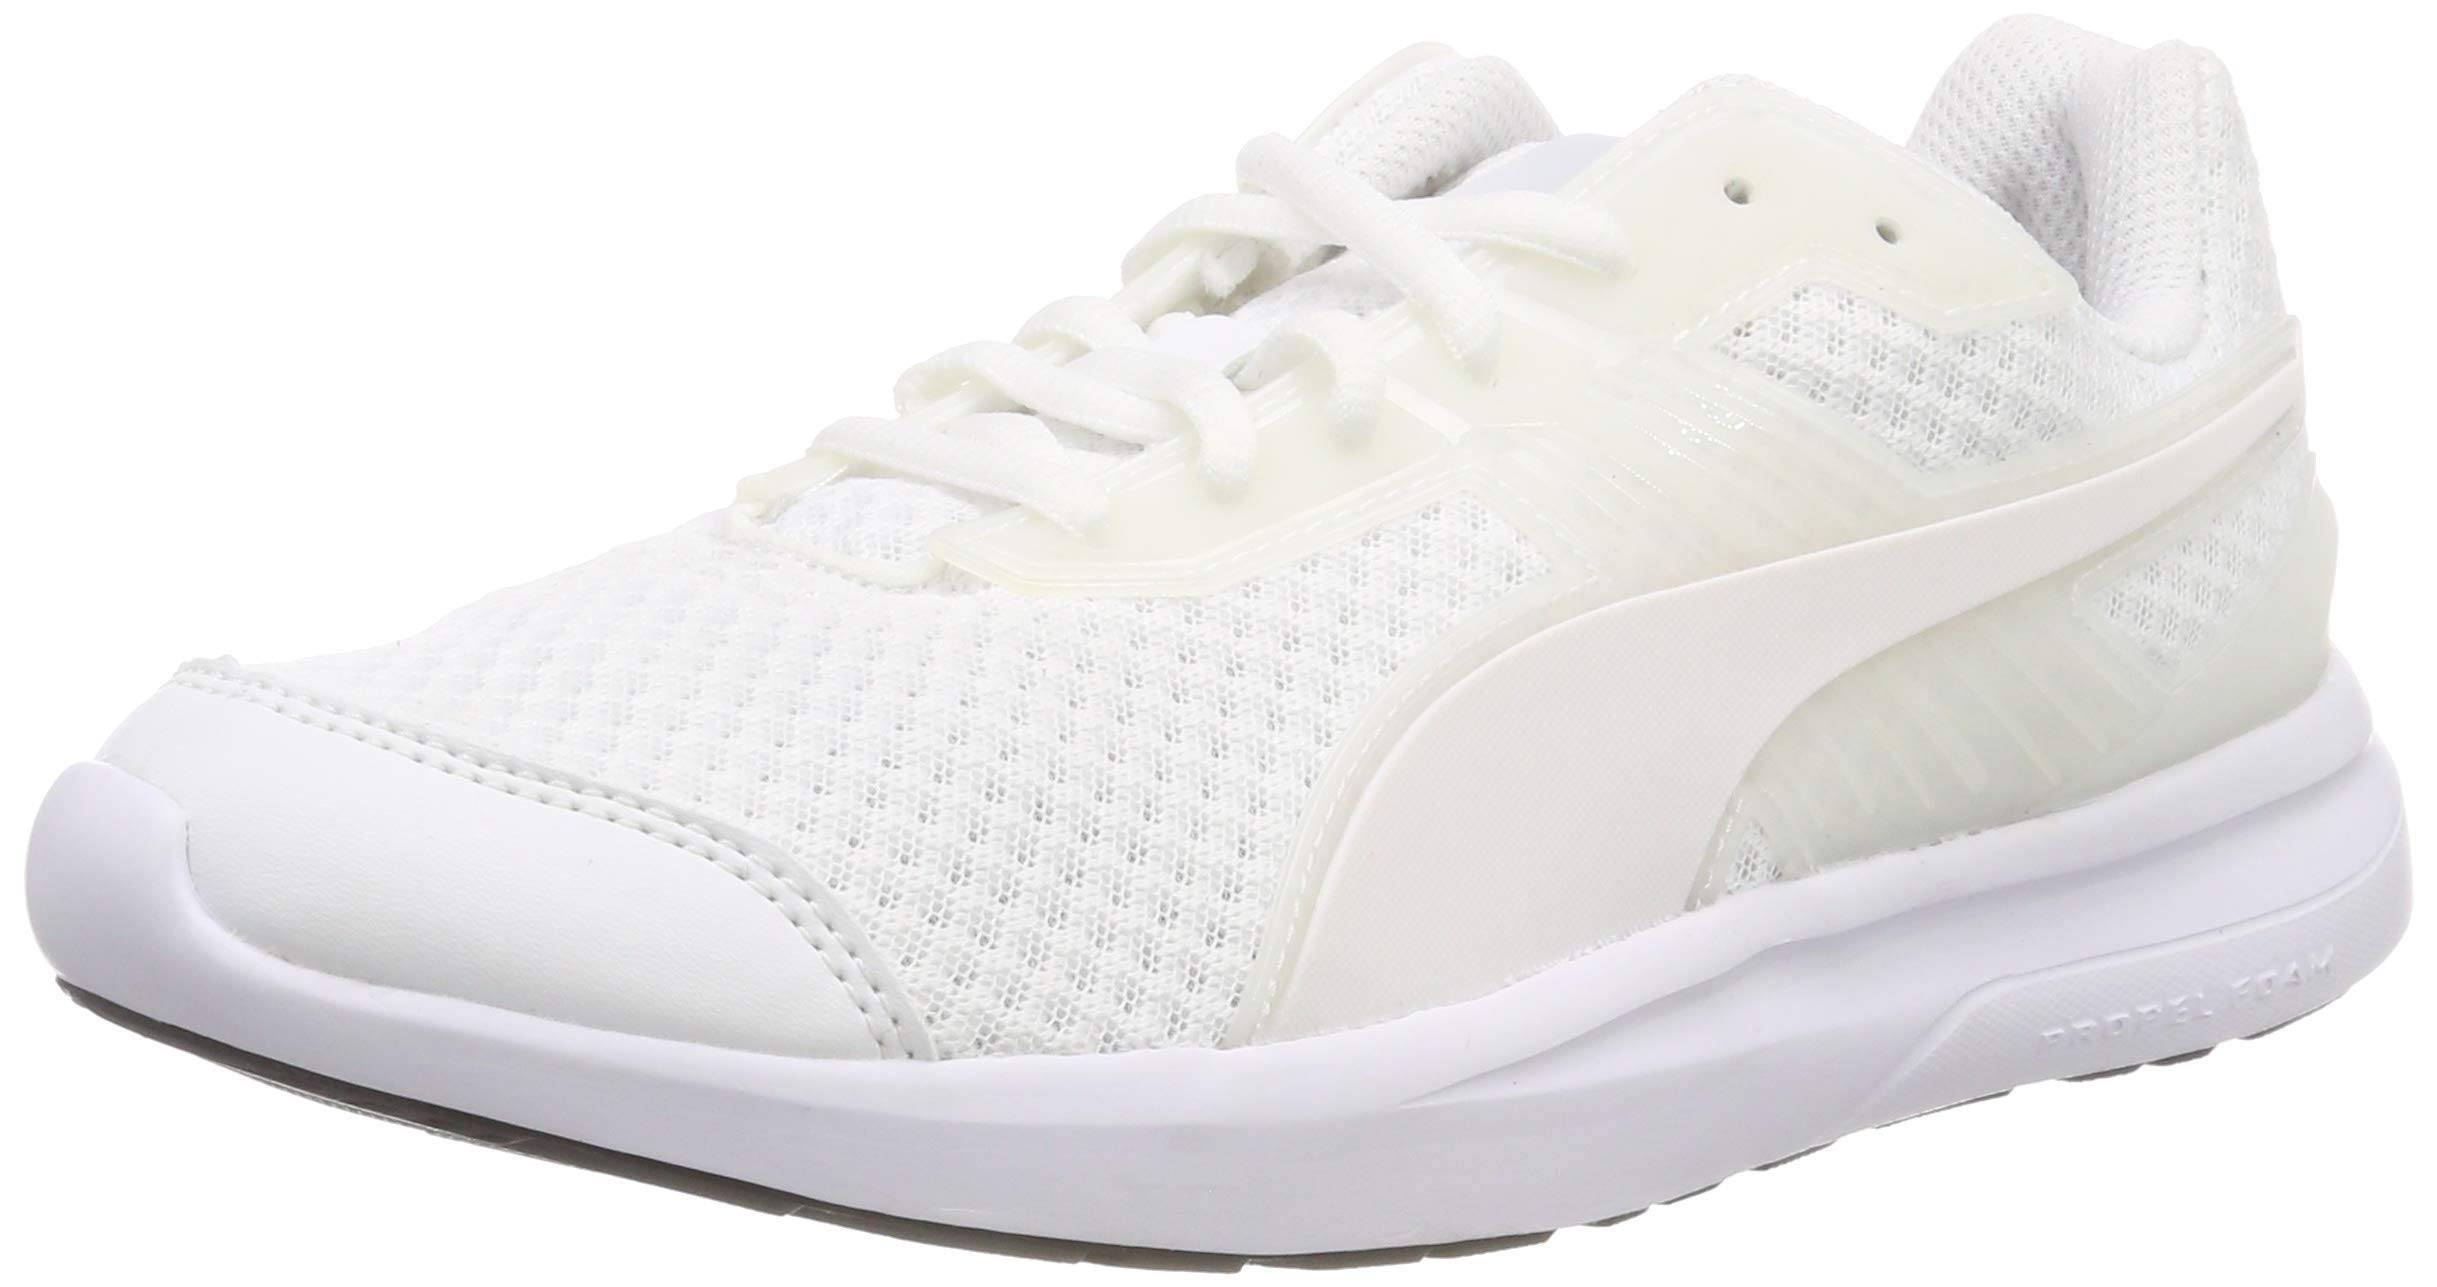 White Puma Escaper Mixte 0943 Eu Basses ProSneakers AdulteBlanc 8kPX0Onw